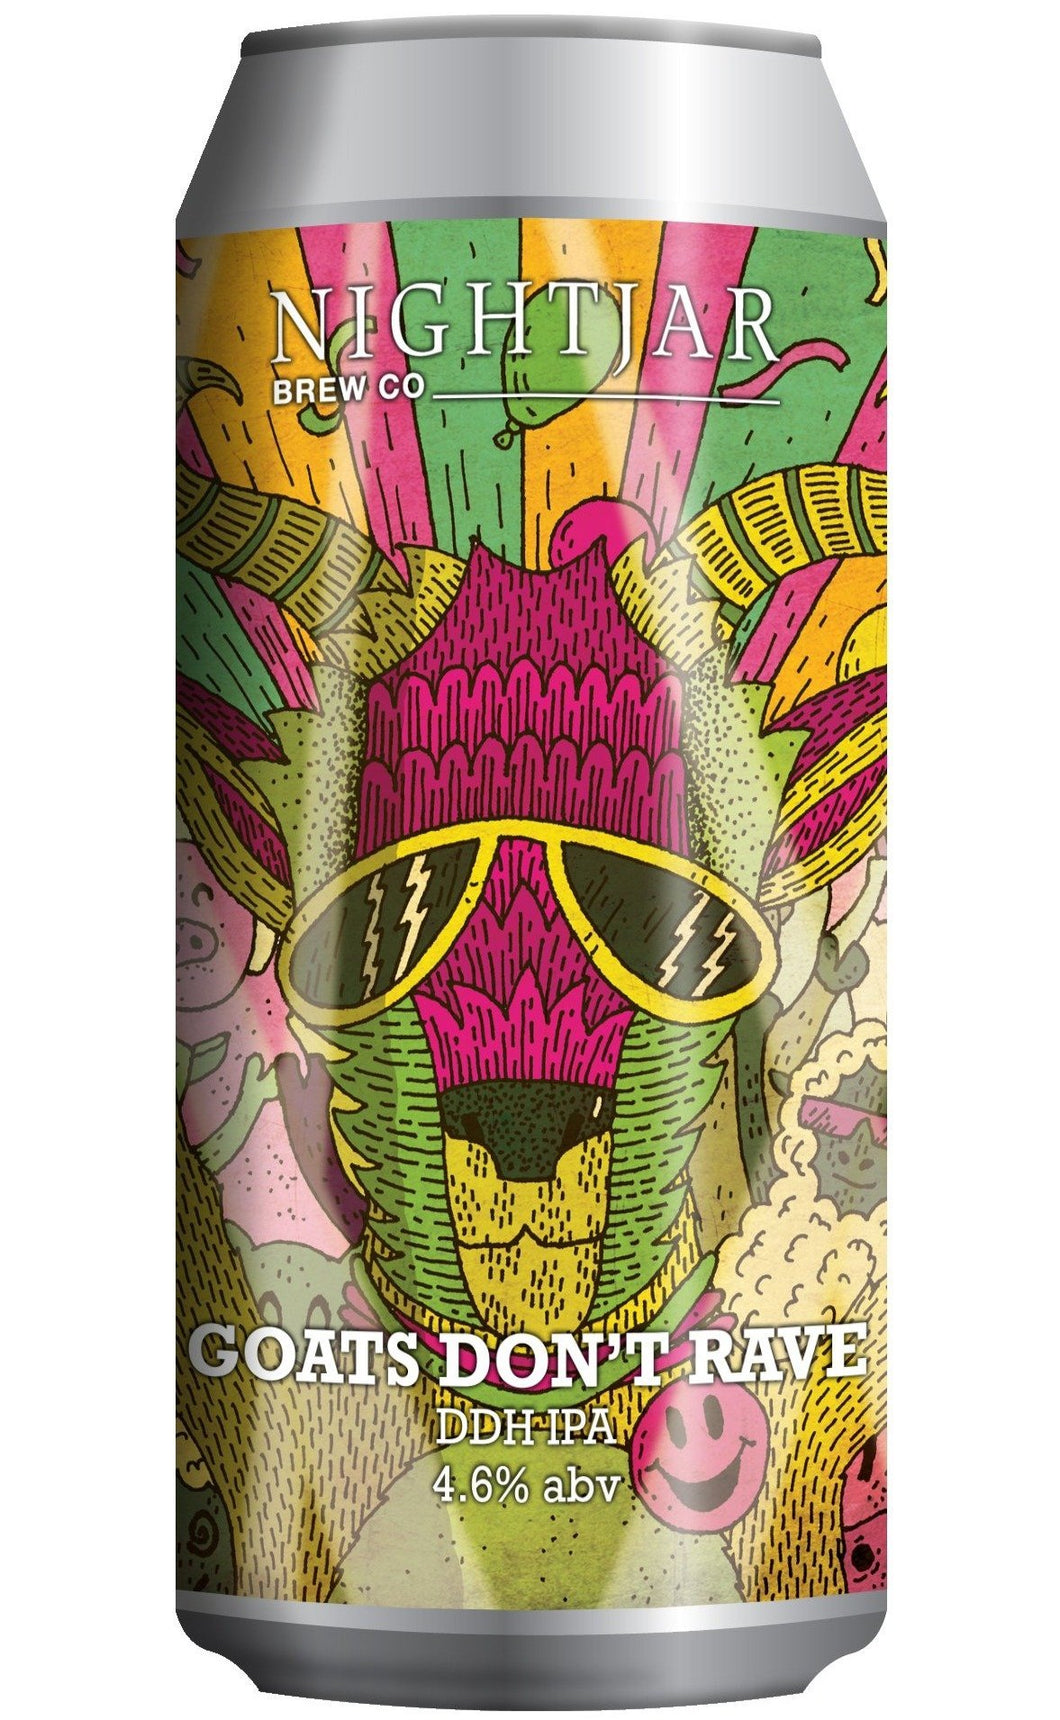 Goats Don't Rave DDH IPA 440ml - Thirst Class Ale